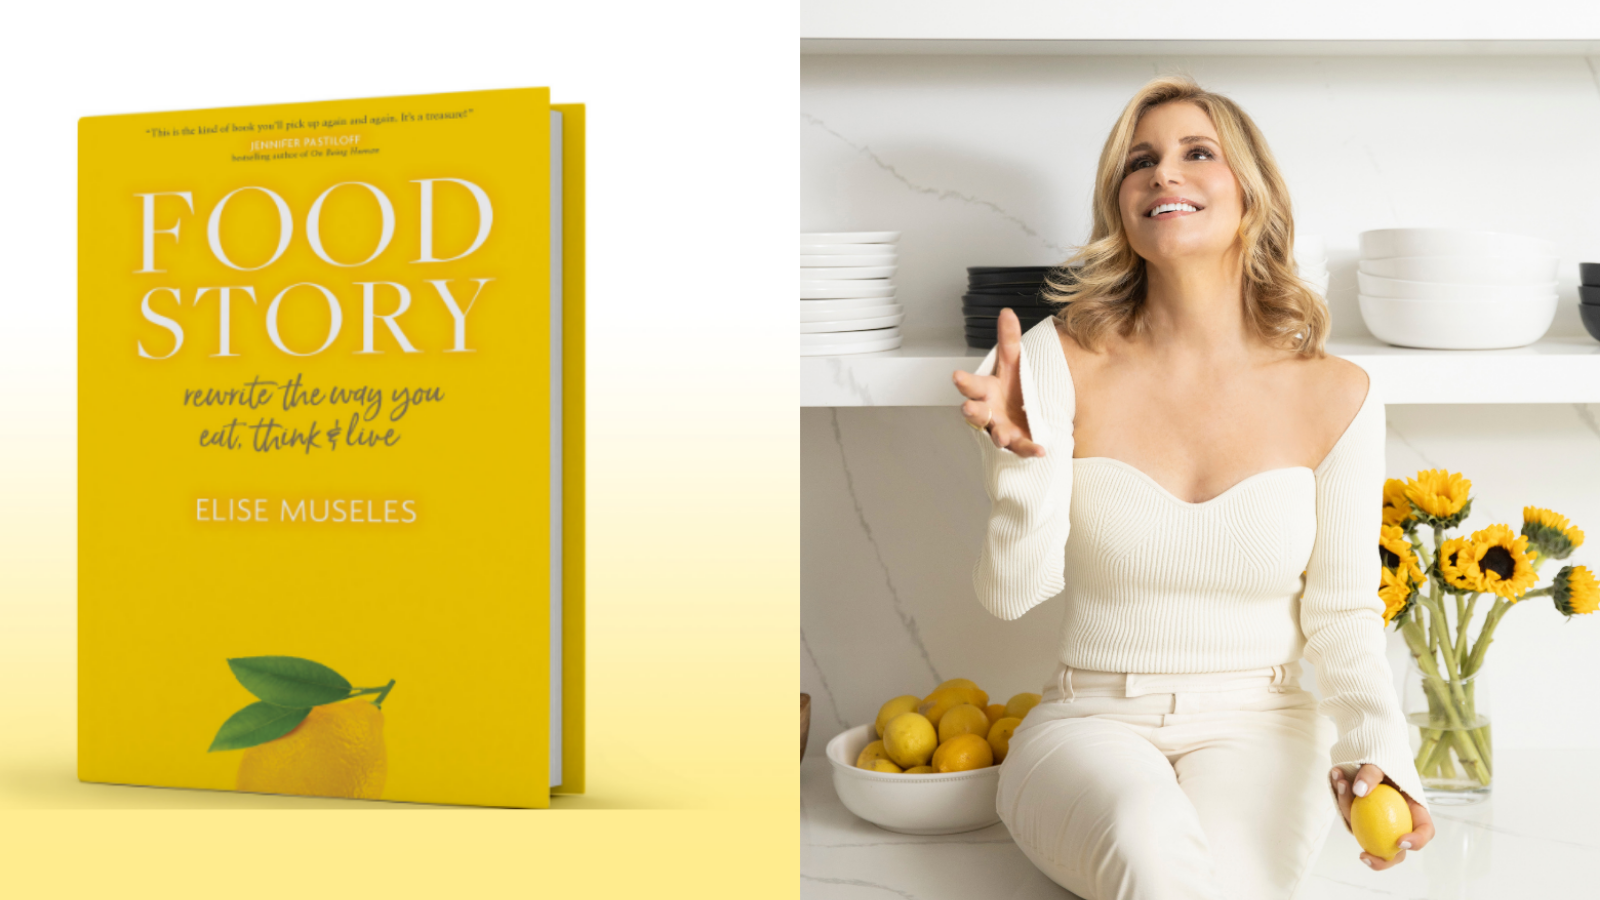 Author Elise Museles cooking and also a cover of her new Food Story book